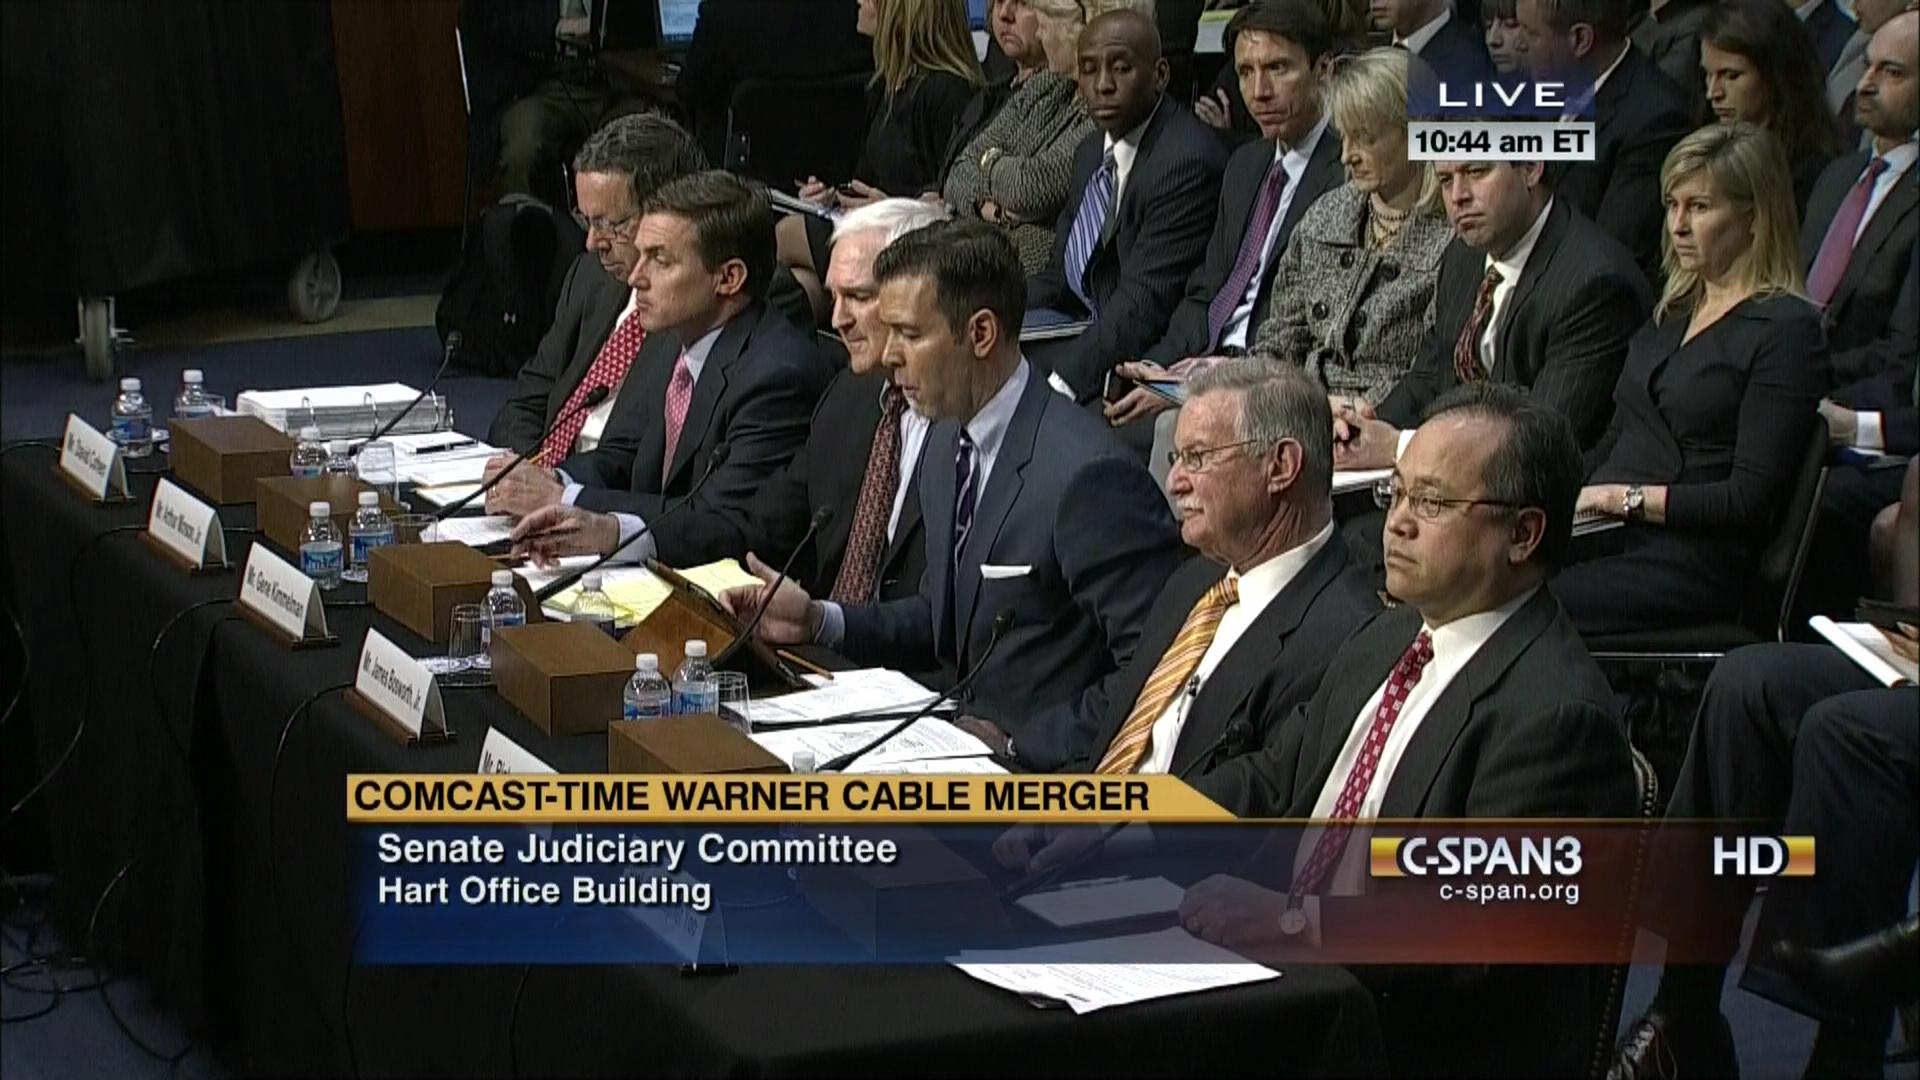 Comcast Time Warner Cable Merger, Apr 9 2014 | Video | C-SPAN.org